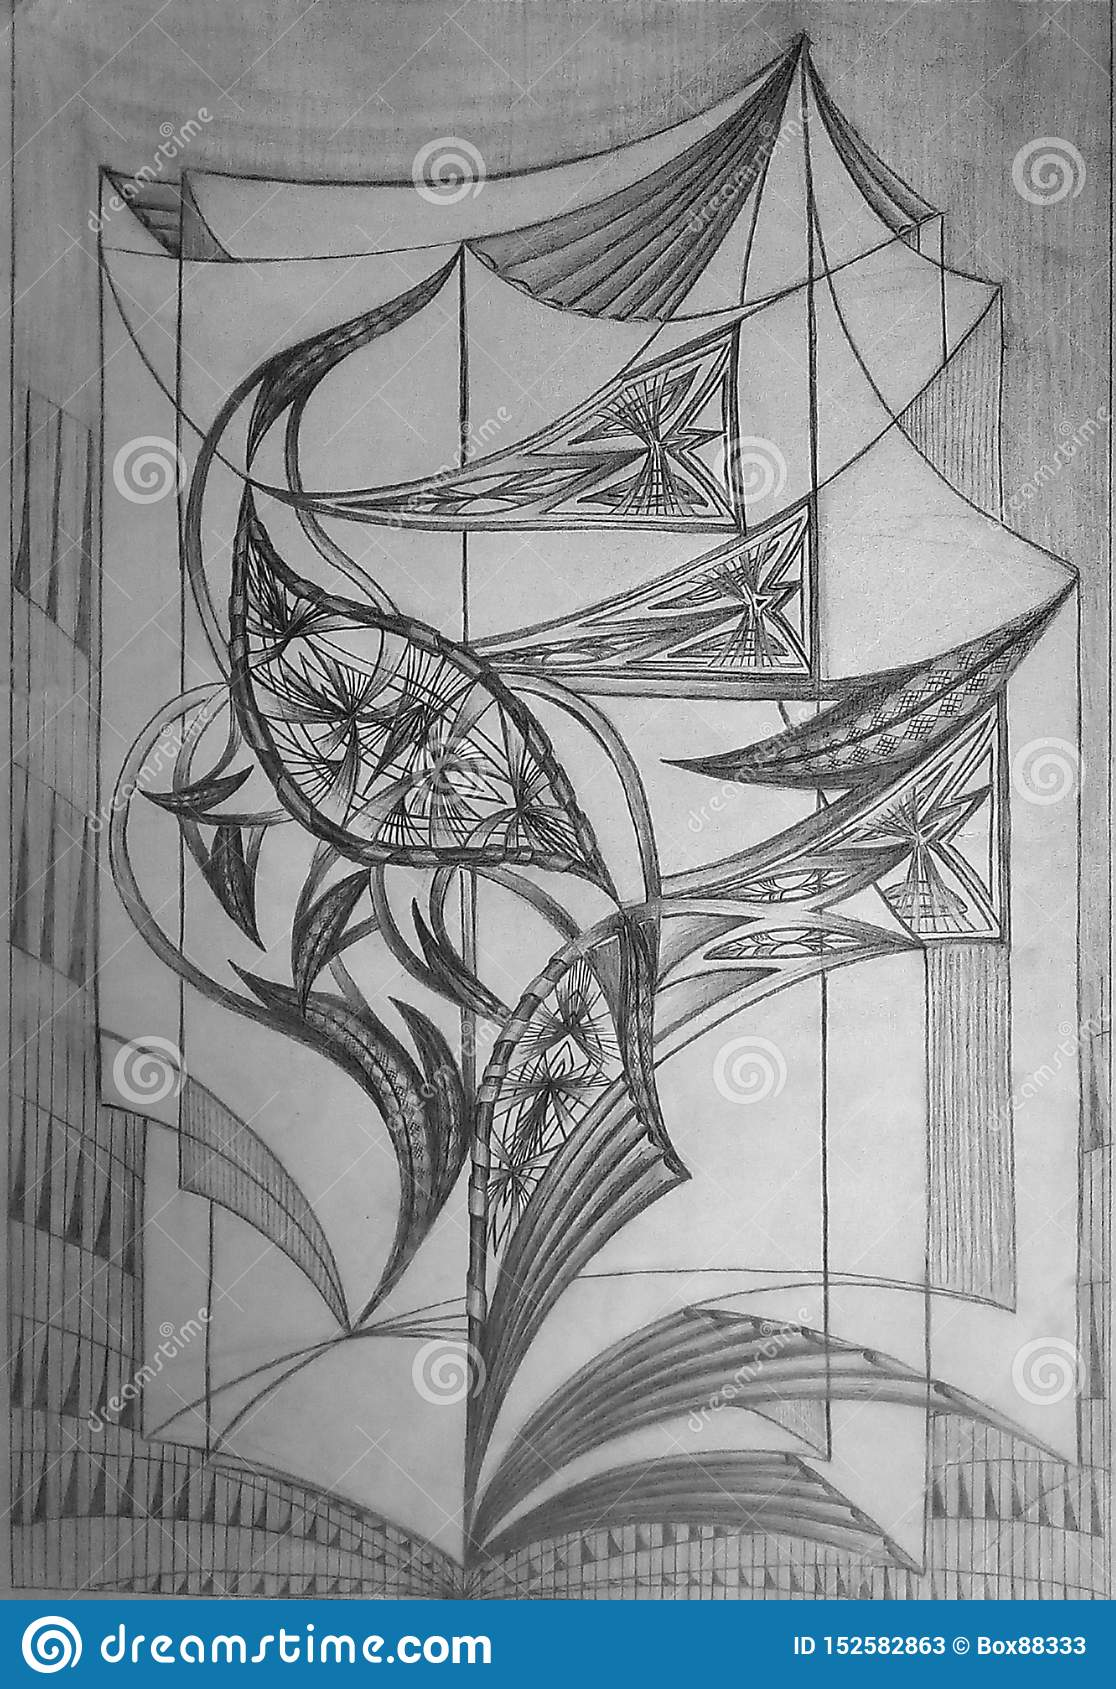 Abstract pattern made on white paper with graphite pencil. Graphic image.